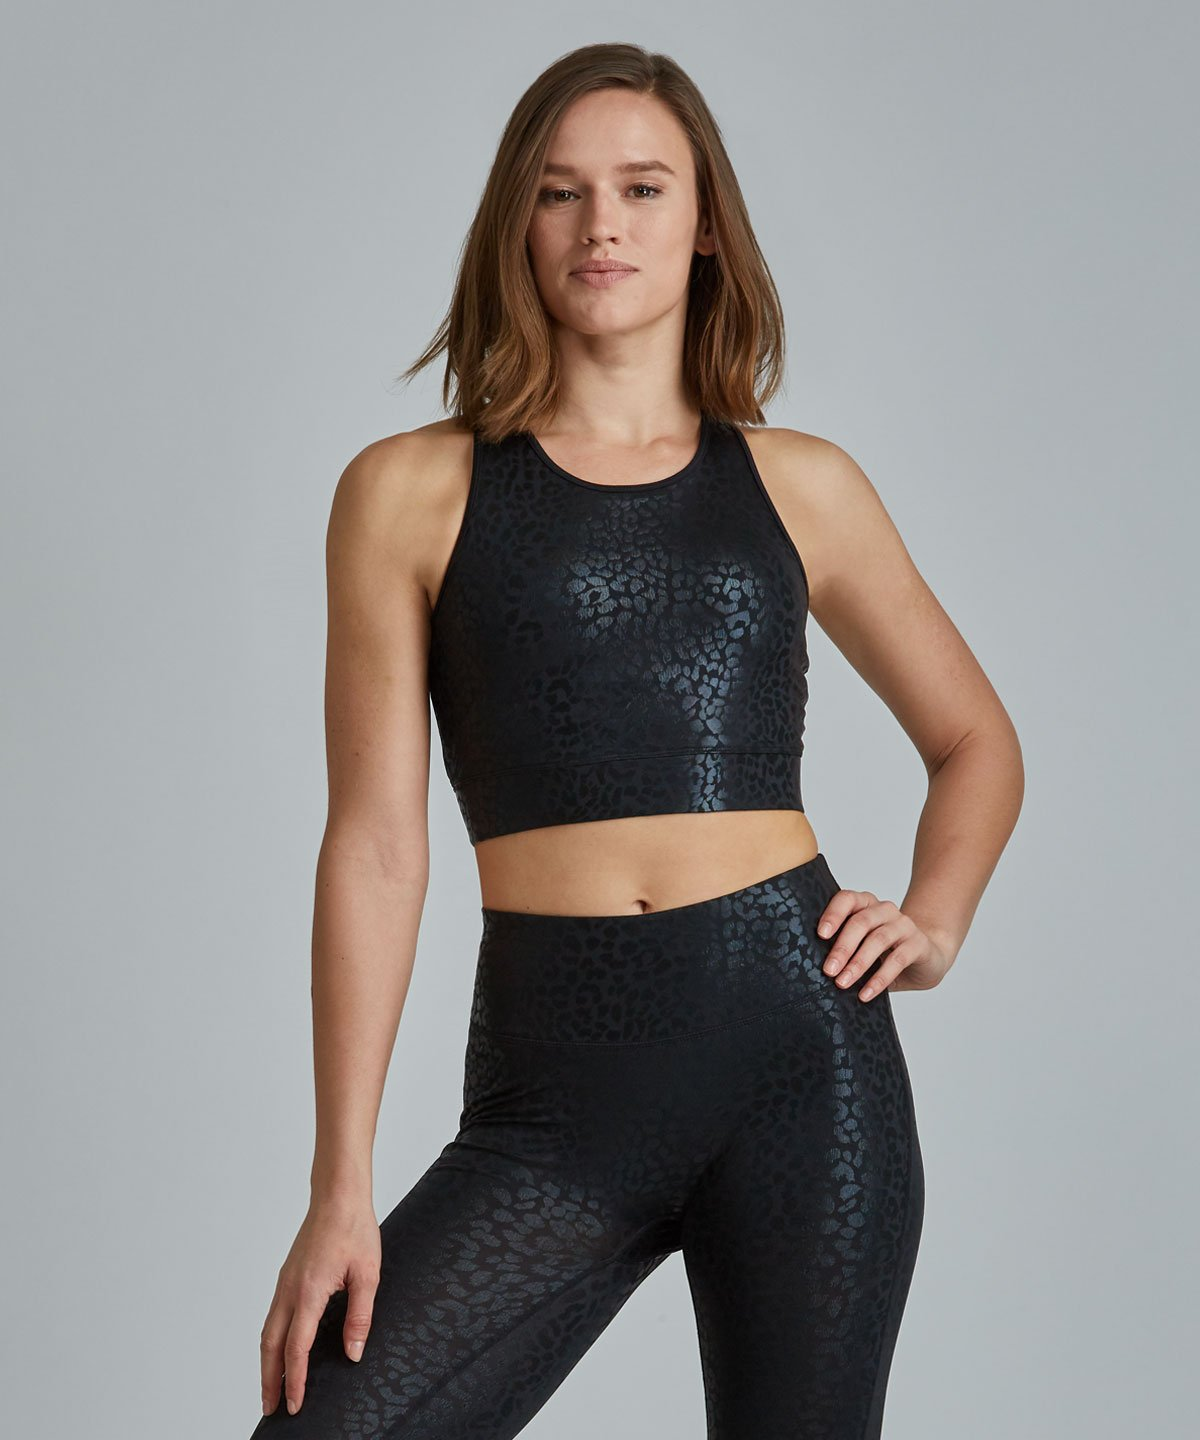 Crop Bra Top - Lynx Black Lynx Crop Bra Top - Women's Sports Bra by PRISMSPORT